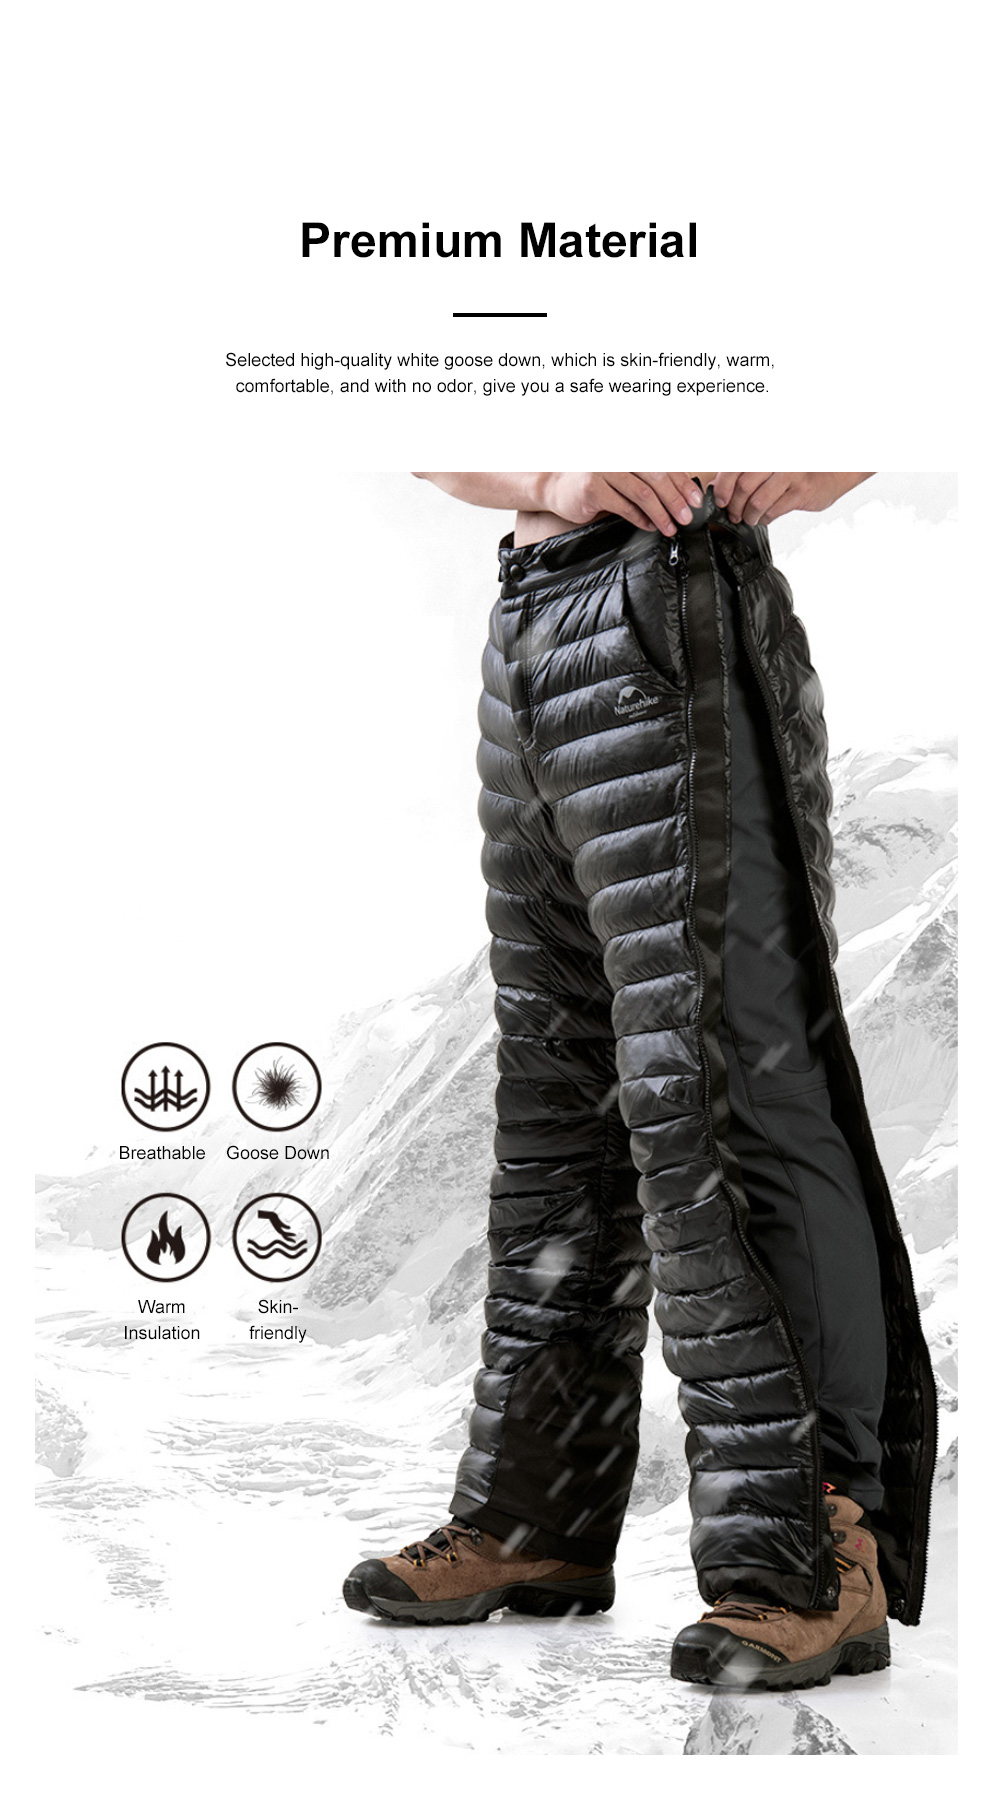 NH 95% Goose Down Pants Windproof and Water-Resistant Insulated Snow Trousers for Winter Outdoor Sport 3